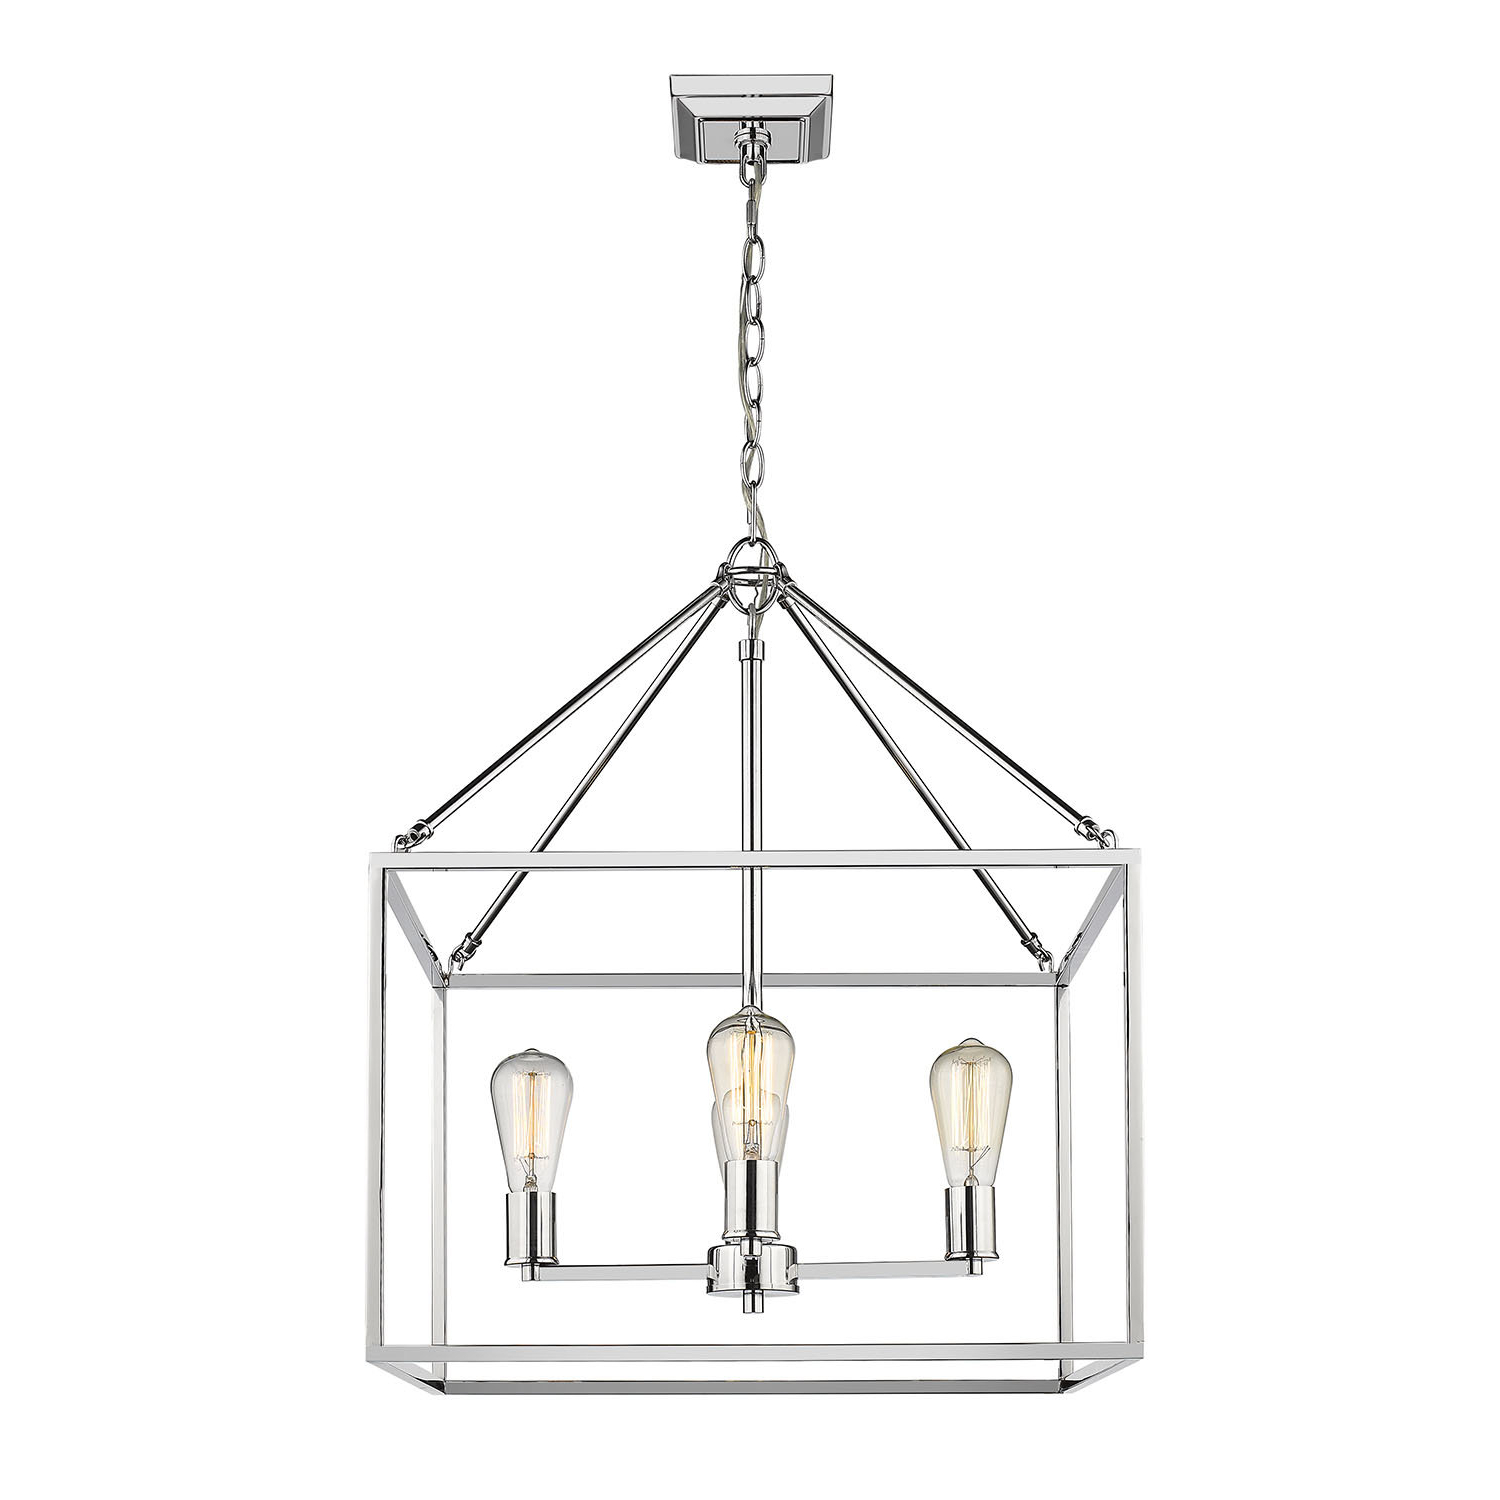 Popular Thorne 4 Light Lantern Rectangle Pendants With Regard To Zabel 4 Light Lantern Square / Rectangle Pendant (View 21 of 25)